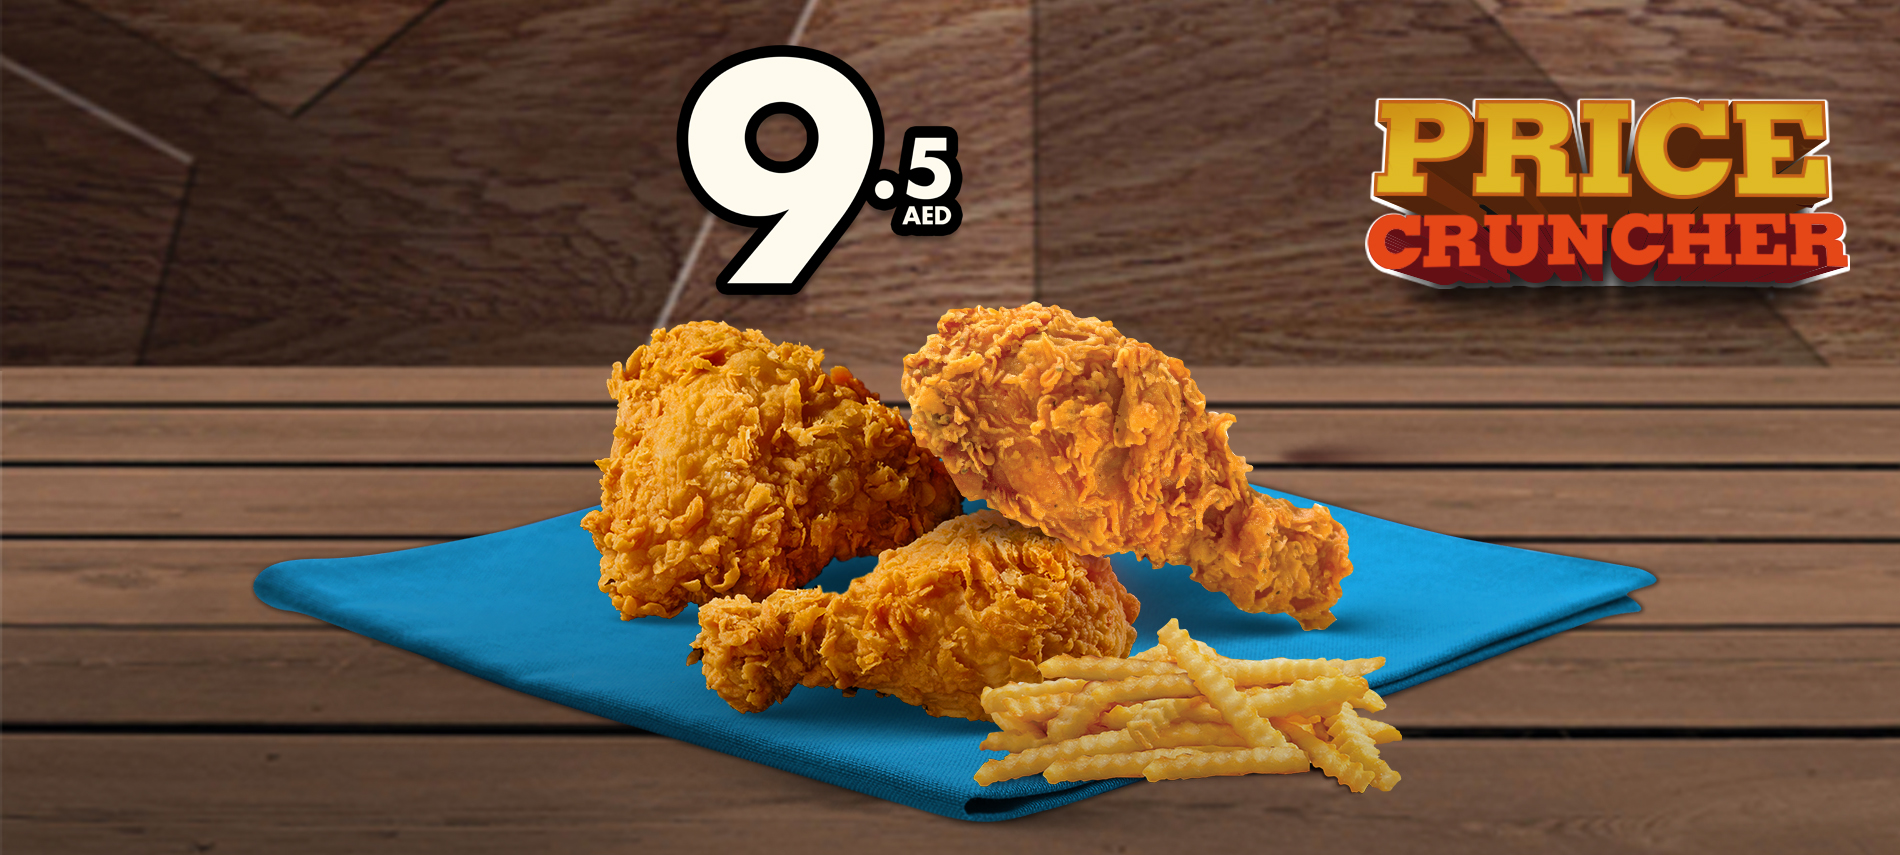 Texas Chicken Price Cruncher offer for just AED 9.5! - Dubaisavers